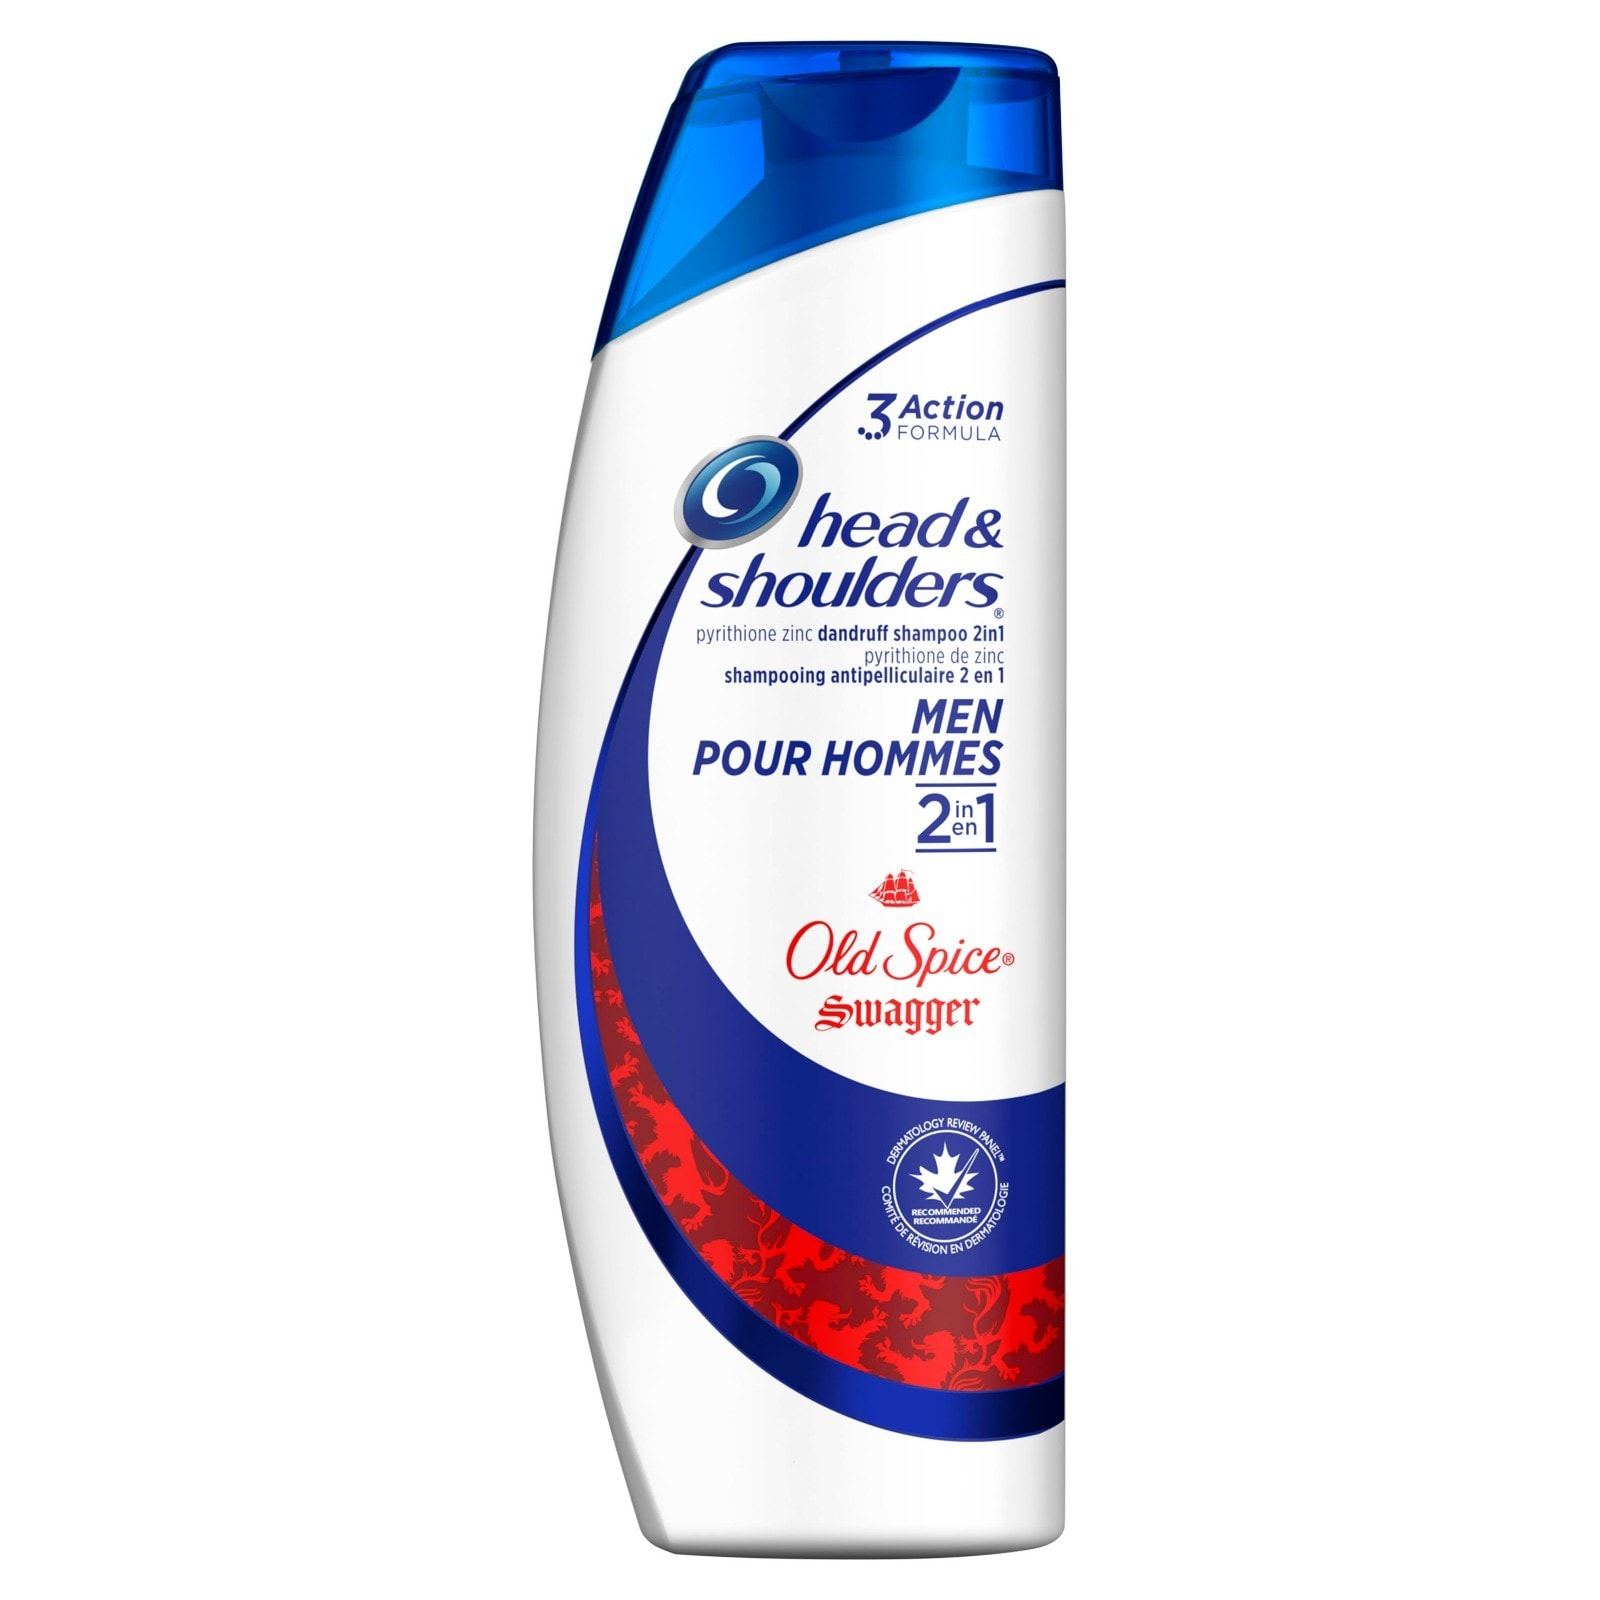 Old Spice Swagger Shampooing et revitalisant antipelliculaire 2 en 1 pour hommes